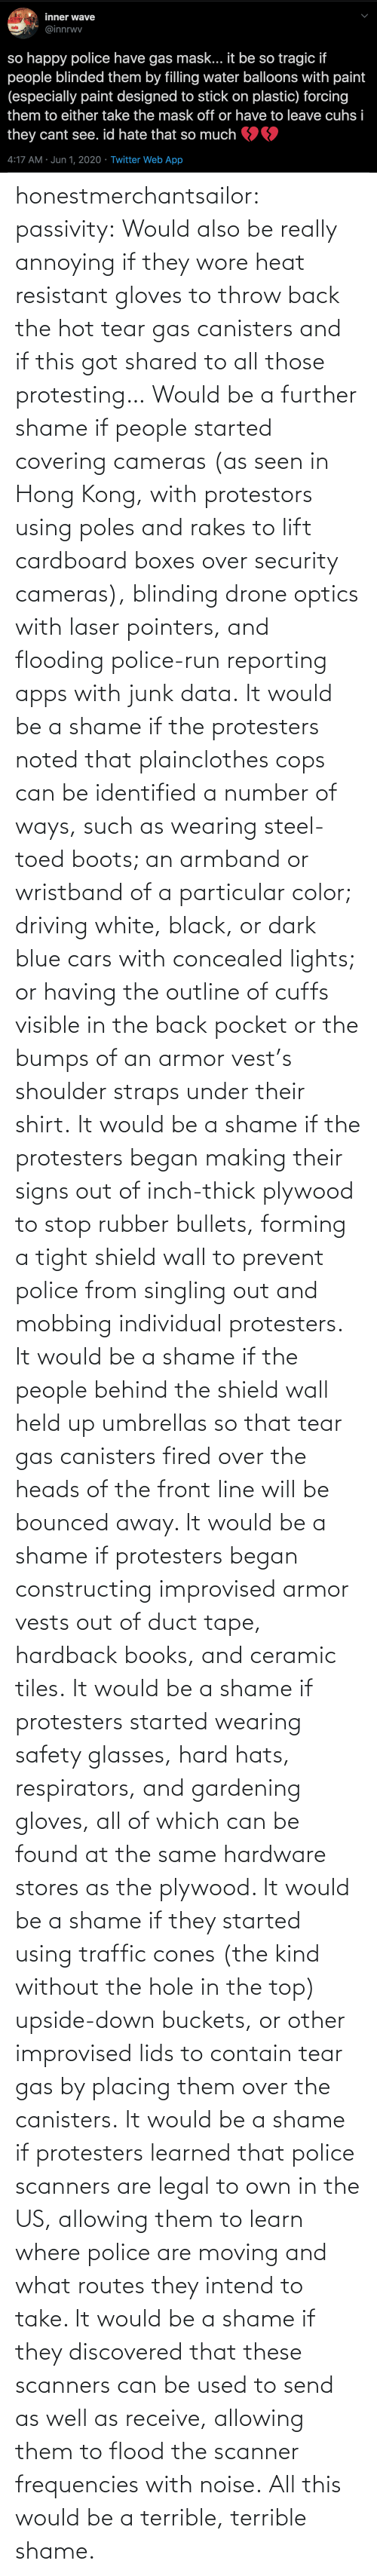 as well: honestmerchantsailor:  passivity: Would also be really annoying if they wore heat resistant gloves to throw back the hot tear gas canisters and if this got shared to all those protesting… Would be a further shame if people started covering cameras (as seen in Hong Kong, with protestors using poles and rakes to lift cardboard boxes over security cameras), blinding drone optics with laser pointers, and flooding police-run reporting apps with junk data. It would be a shame if the protesters noted that plainclothes cops can be identified a number of ways, such as wearing steel-toed boots; an armband or wristband of a particular color; driving white, black, or dark blue cars with concealed lights; or having the outline of cuffs visible in the back pocket or the bumps of an armor vest's shoulder straps under their shirt. It would be a shame if the protesters began making their signs out of inch-thick plywood to stop rubber bullets, forming a tight shield wall to prevent police from singling out and mobbing individual protesters. It would be a shame if the people behind the shield wall held up umbrellas so that tear gas canisters fired over the heads of the front line will be bounced away. It would be a shame if protesters began constructing improvised armor vests out of duct tape, hardback books, and ceramic tiles. It would be a shame if protesters started wearing safety glasses, hard hats, respirators, and gardening gloves, all of which can be found at the same hardware stores as the plywood. It would be a shame if they started using traffic cones (the kind without the hole in the top) upside-down buckets, or other improvised lids to contain tear gas by placing them over the canisters. It would be a shame if protesters learned that police scanners are legal to own in the US, allowing them to learn where police are moving and what routes they intend to take. It would be a shame if they discovered that these scanners can be used to send as well as receive, allowing them to flood the scanner frequencies with noise. All this would be a terrible, terrible shame.